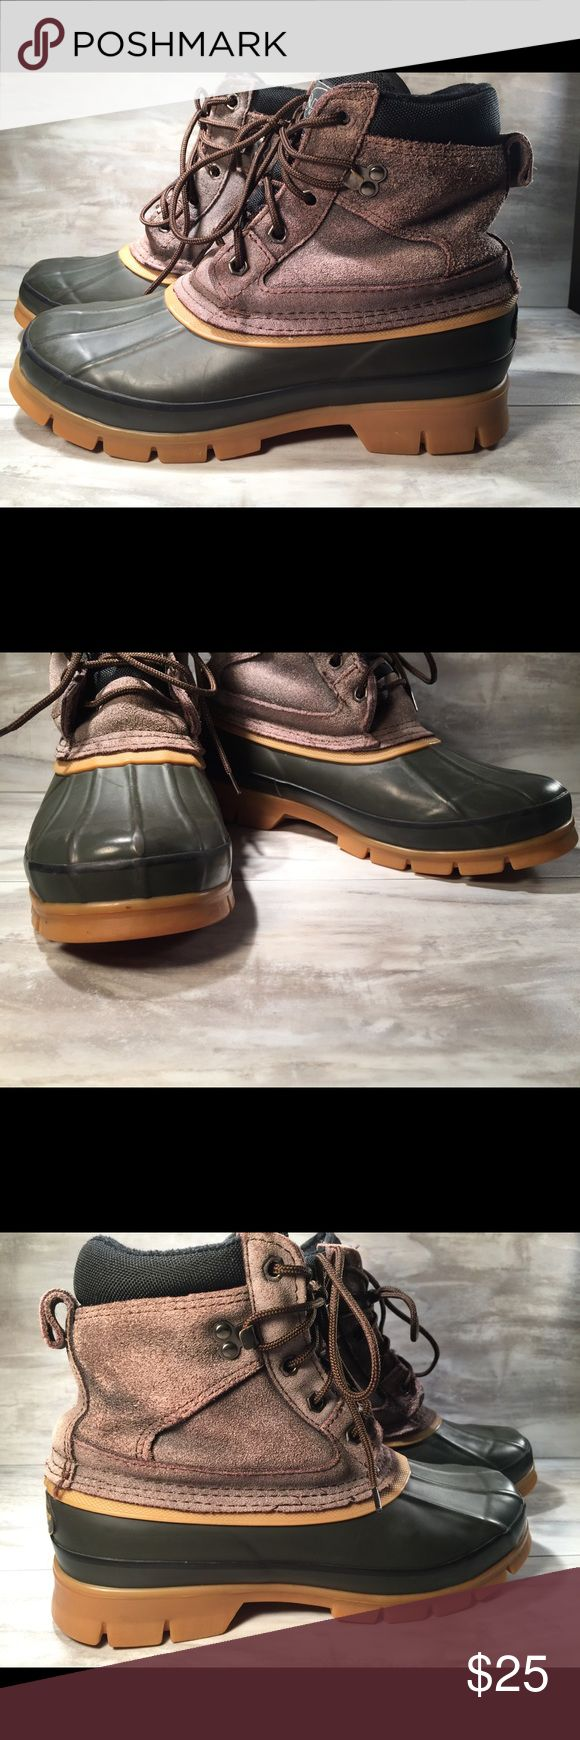 Men's Donner boots size 7 or women's 9 winter rain Men's winter or rain boots. Steel shank boots size 7 in men or a size 9 in women. Used but bottoms show hardly any use. I changed the laces to brown. Smoke free environment. Ask any questions as I respond quickly. Donner  Shoes Boots